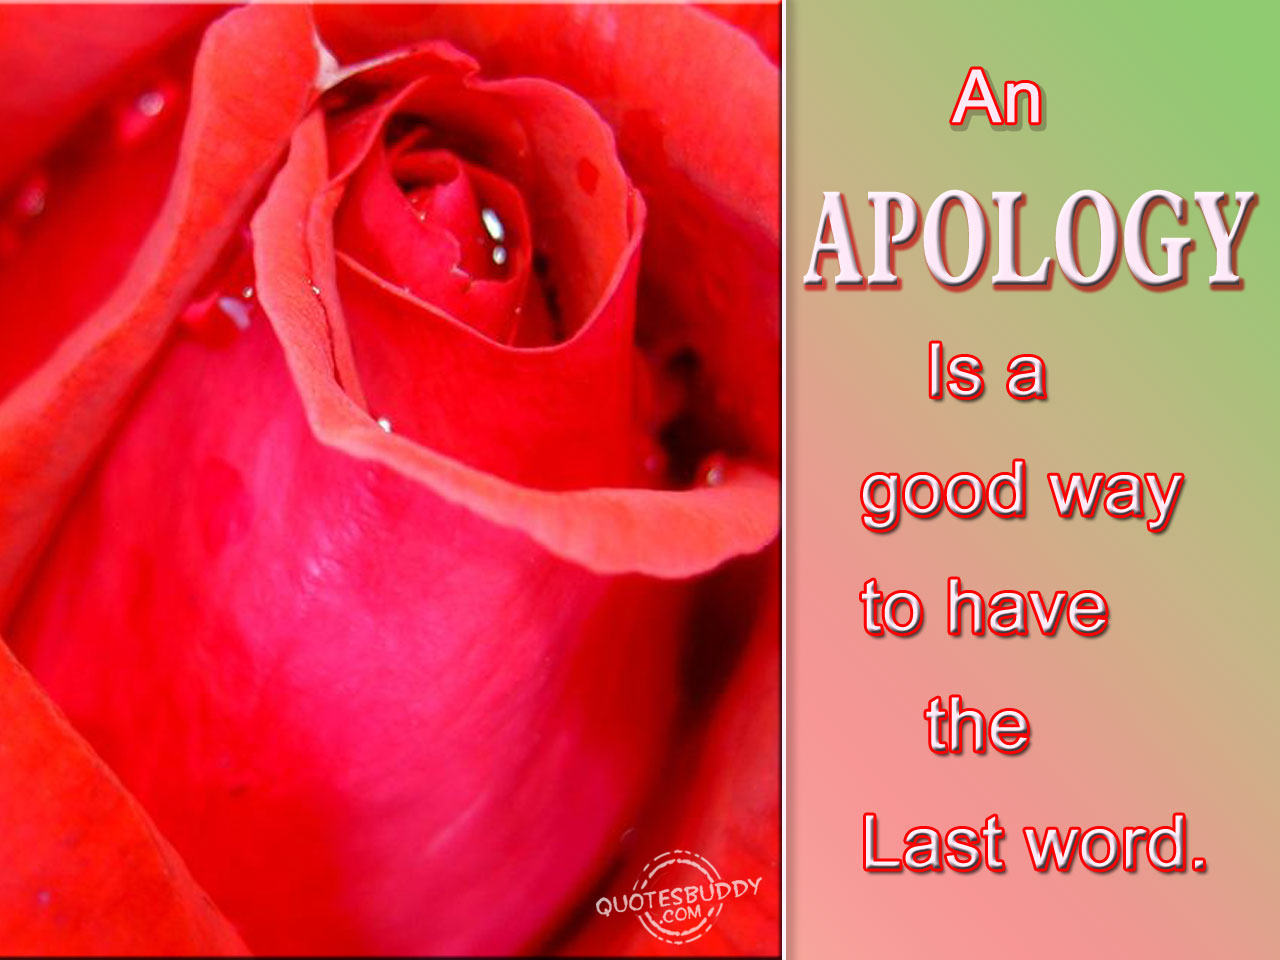 An Apology Is a Good Way To Have The Last Word ~ Apology Quotes